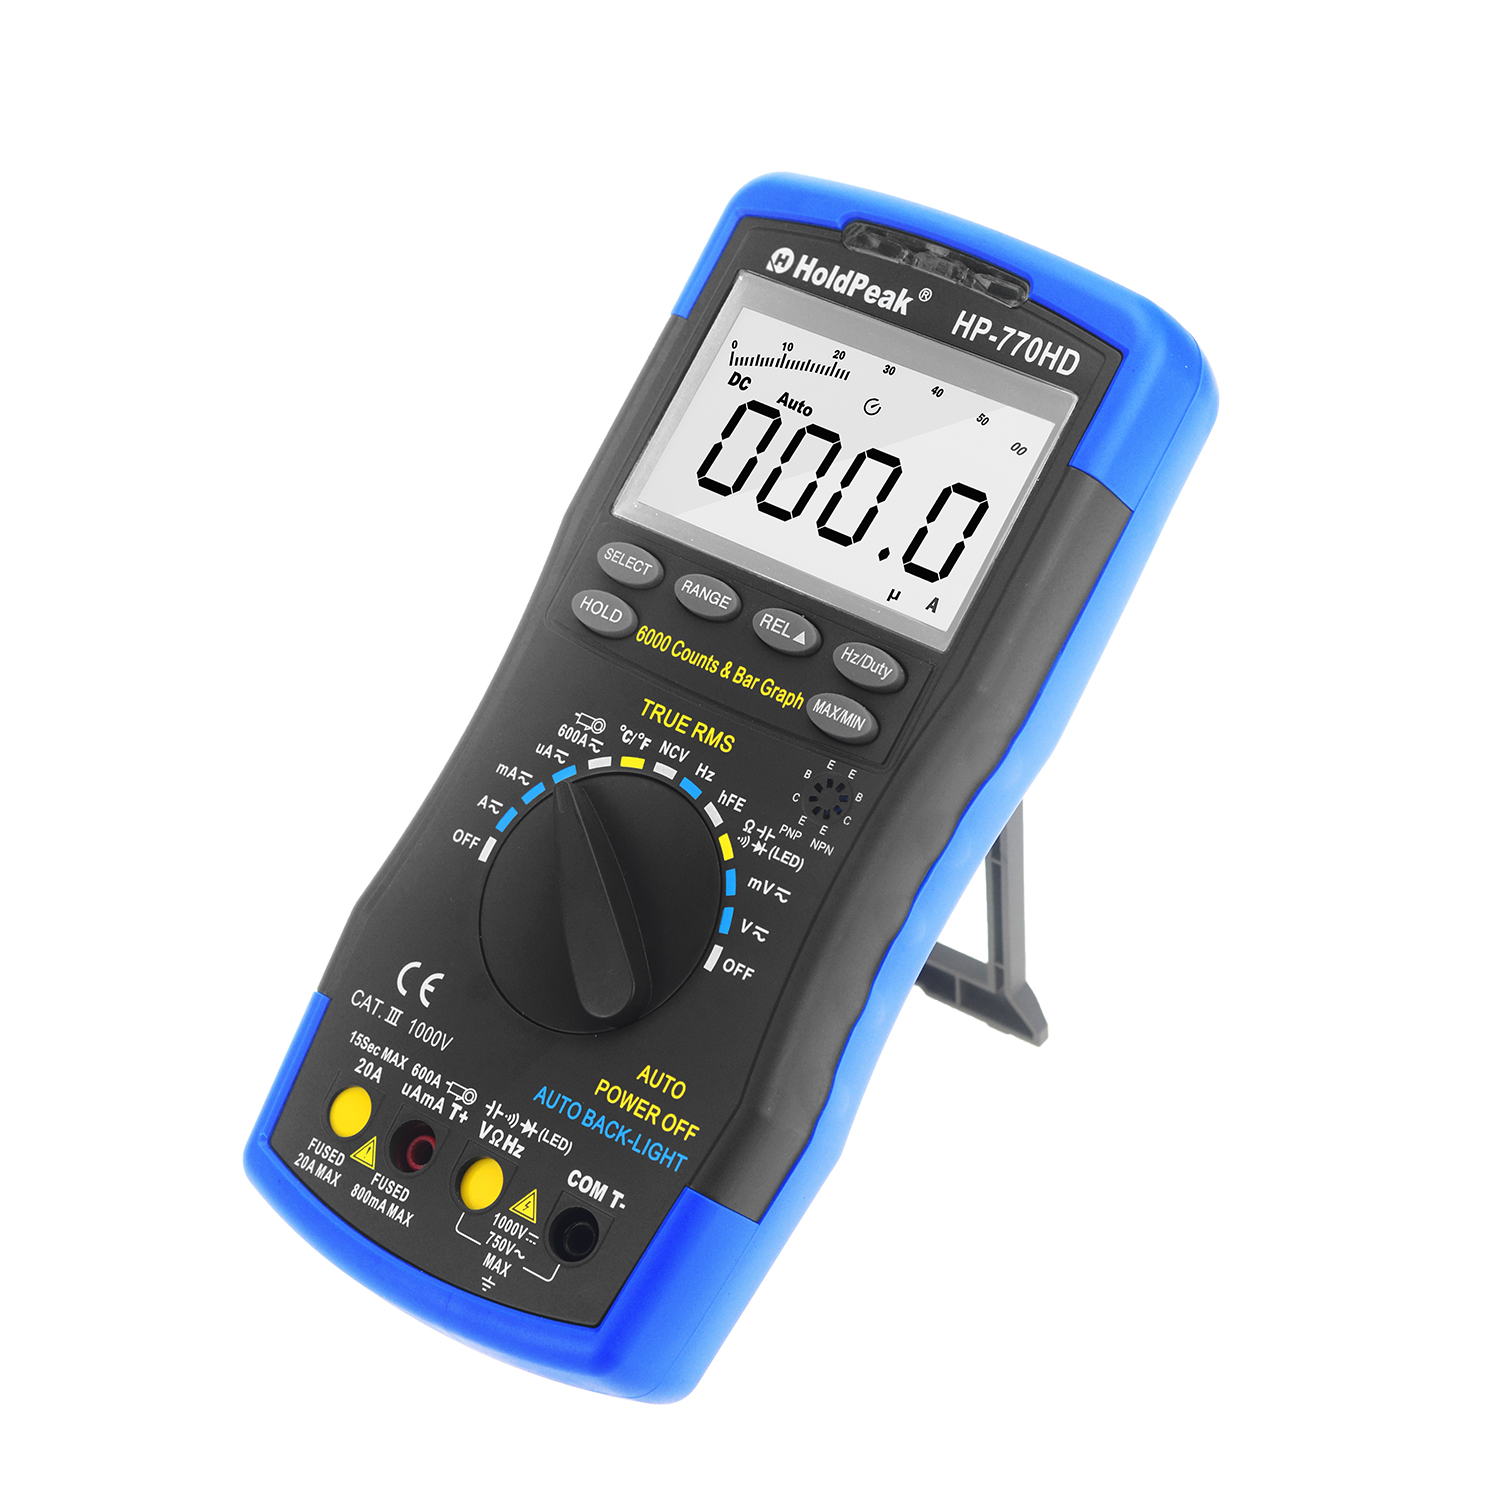 slim size,portable,stable performance,HP-770HD-measuring instruments supplier- digital measurement i